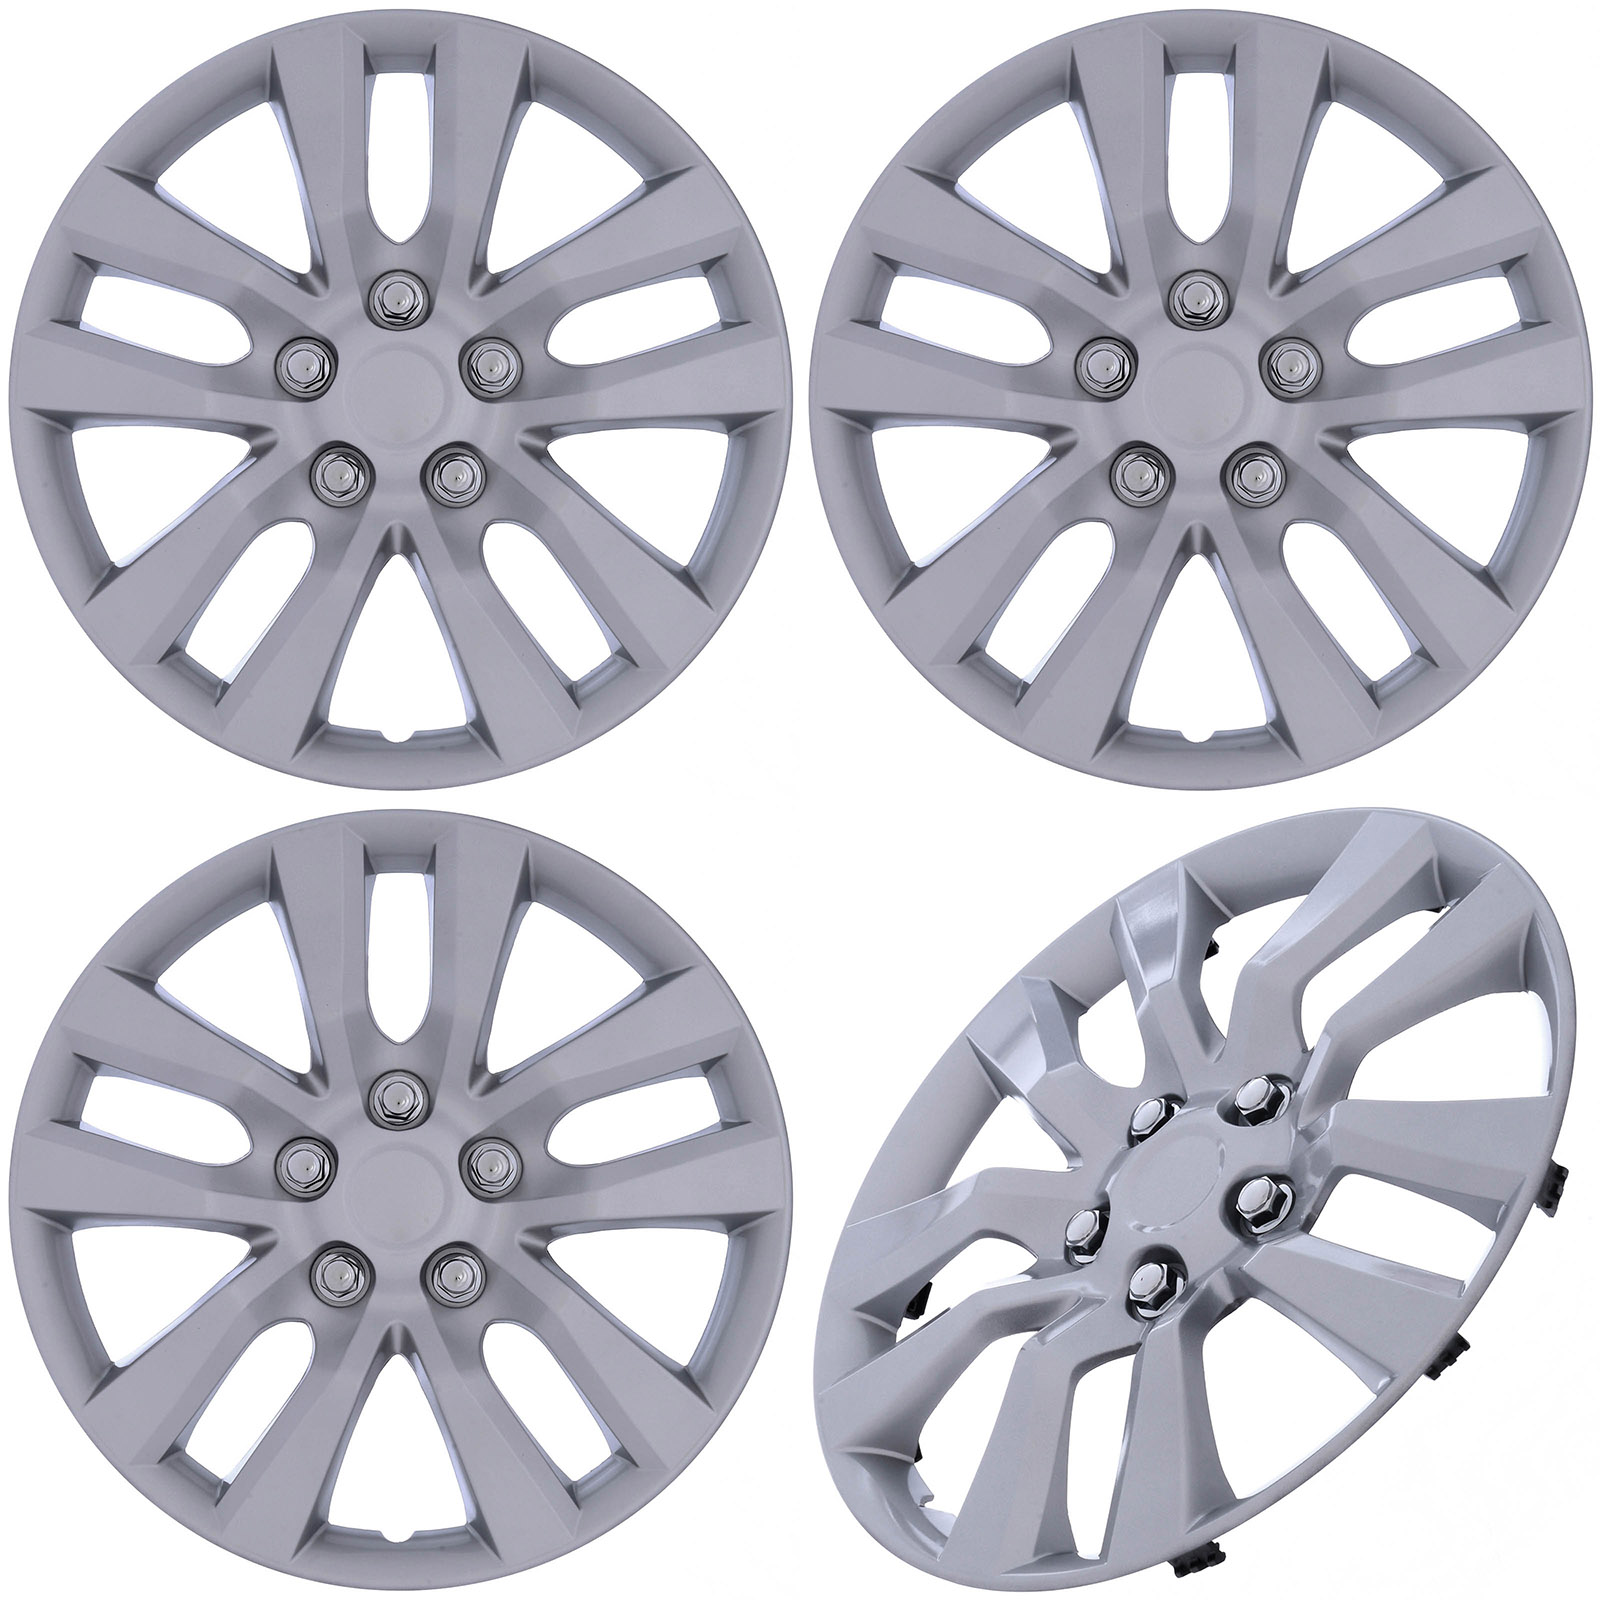 """Cover Trend (Set of 4) SILVER Aftermarket 16"""" Inch Hubcaps fits Nissan Altima, Quest - Replica Snap-On Wheel Covers"""